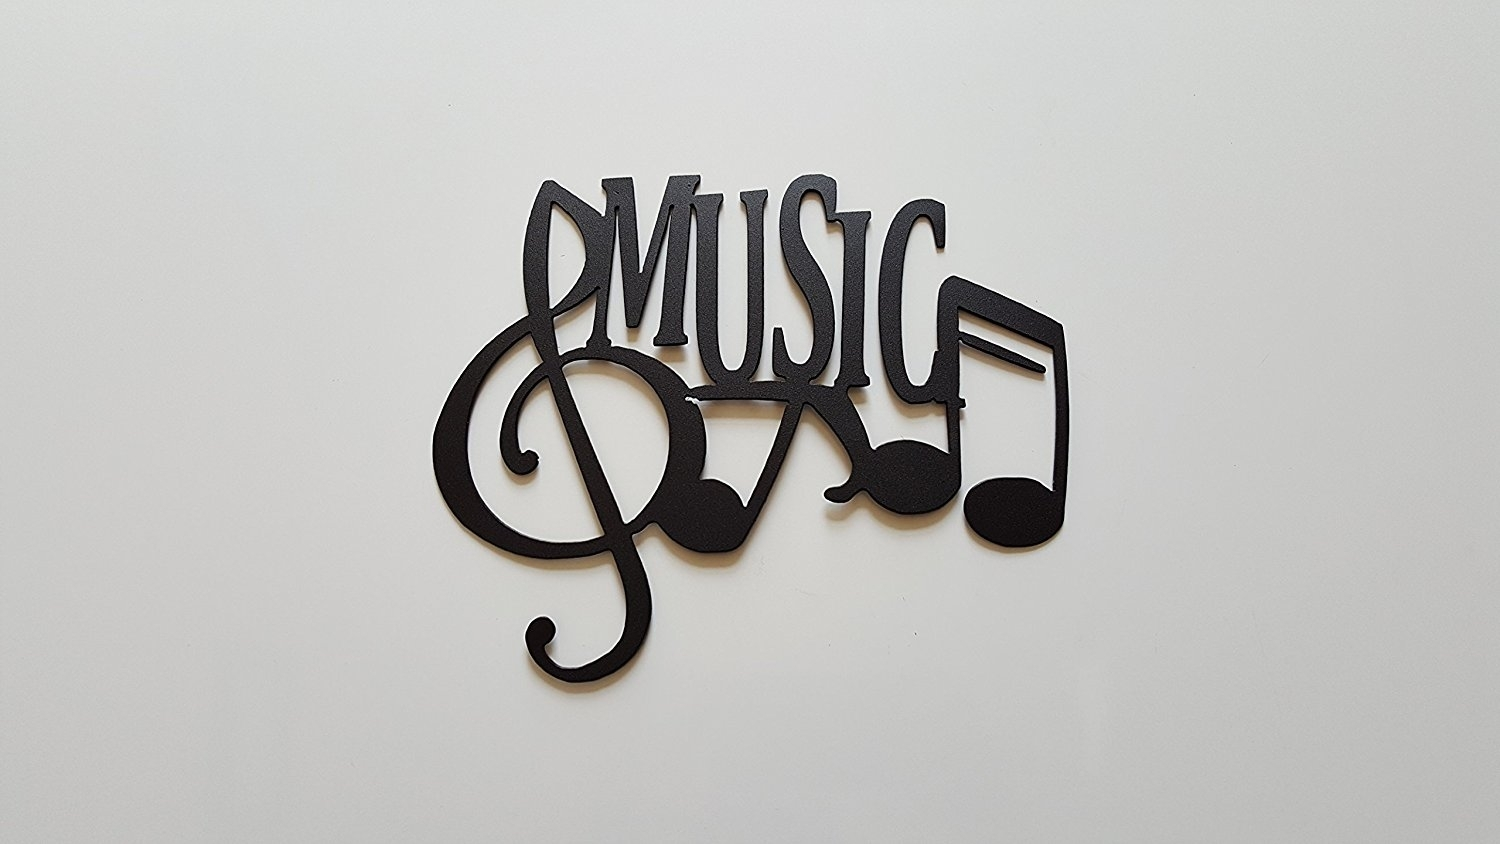 Buy Music Word And Music Notes Metal Wall Art Decor In Cheap Price Within Latest Music Wall Art (View 4 of 15)